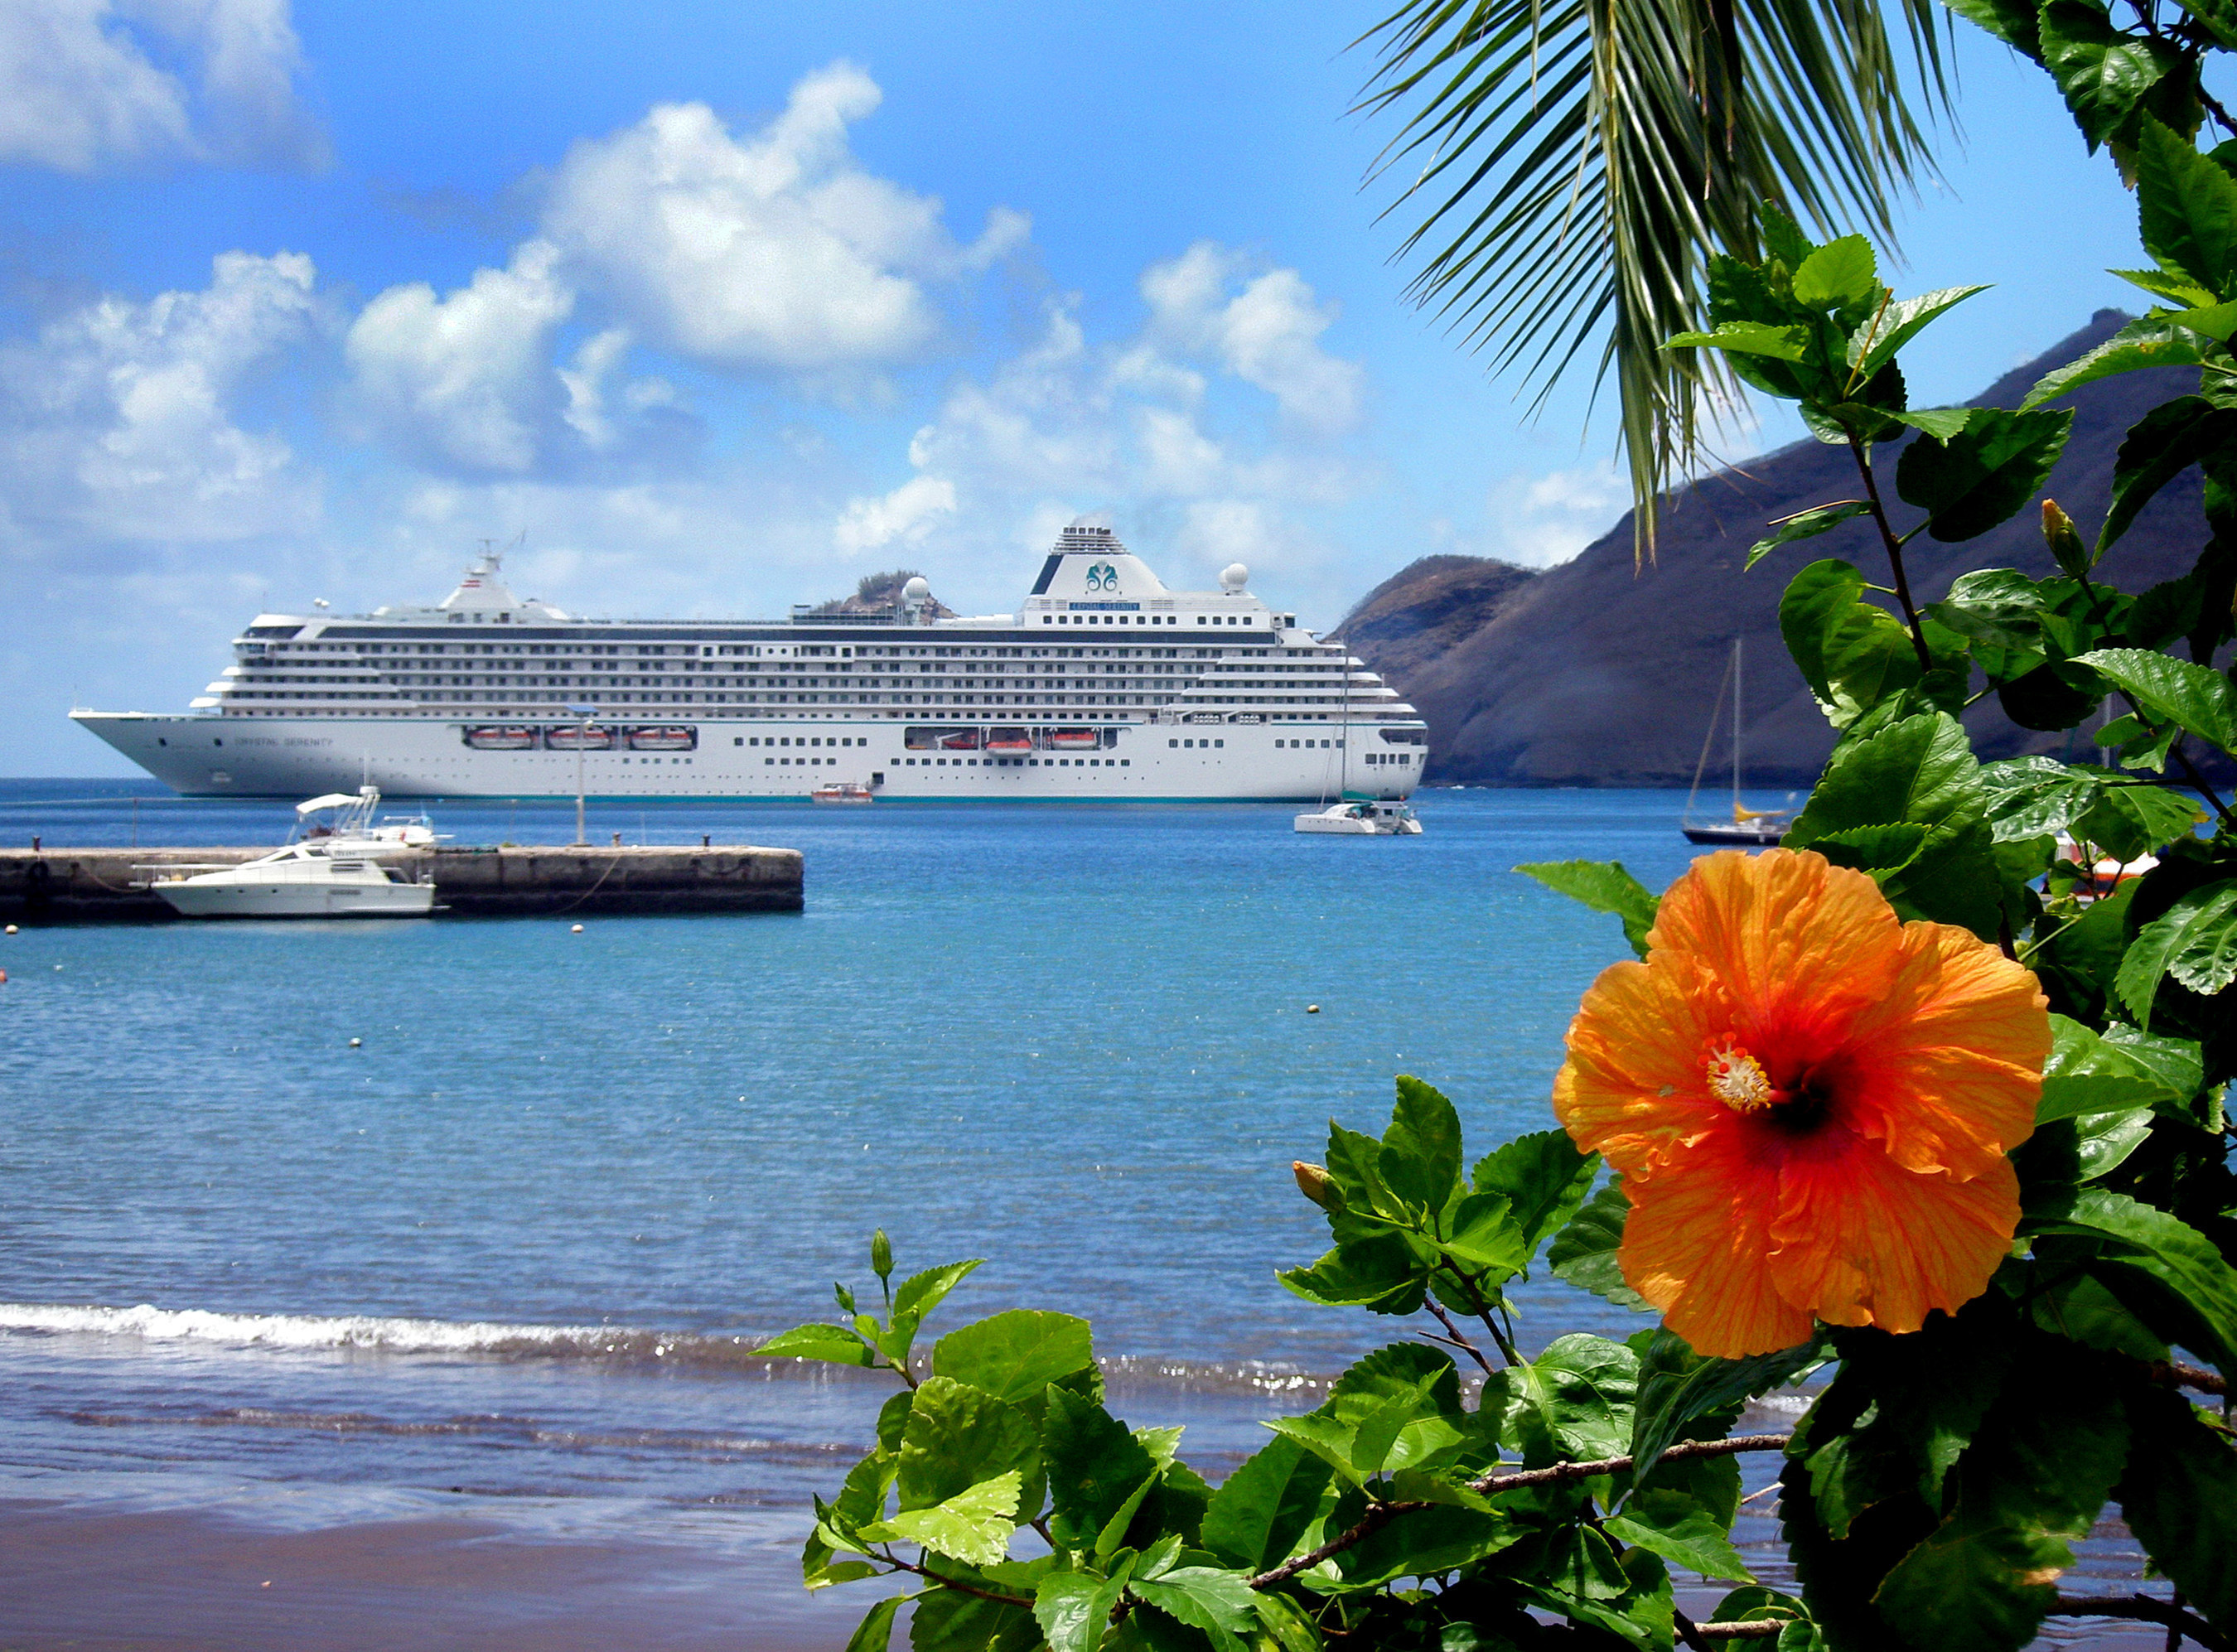 Crystal Serenity off the coast of the Hawaiian Islands